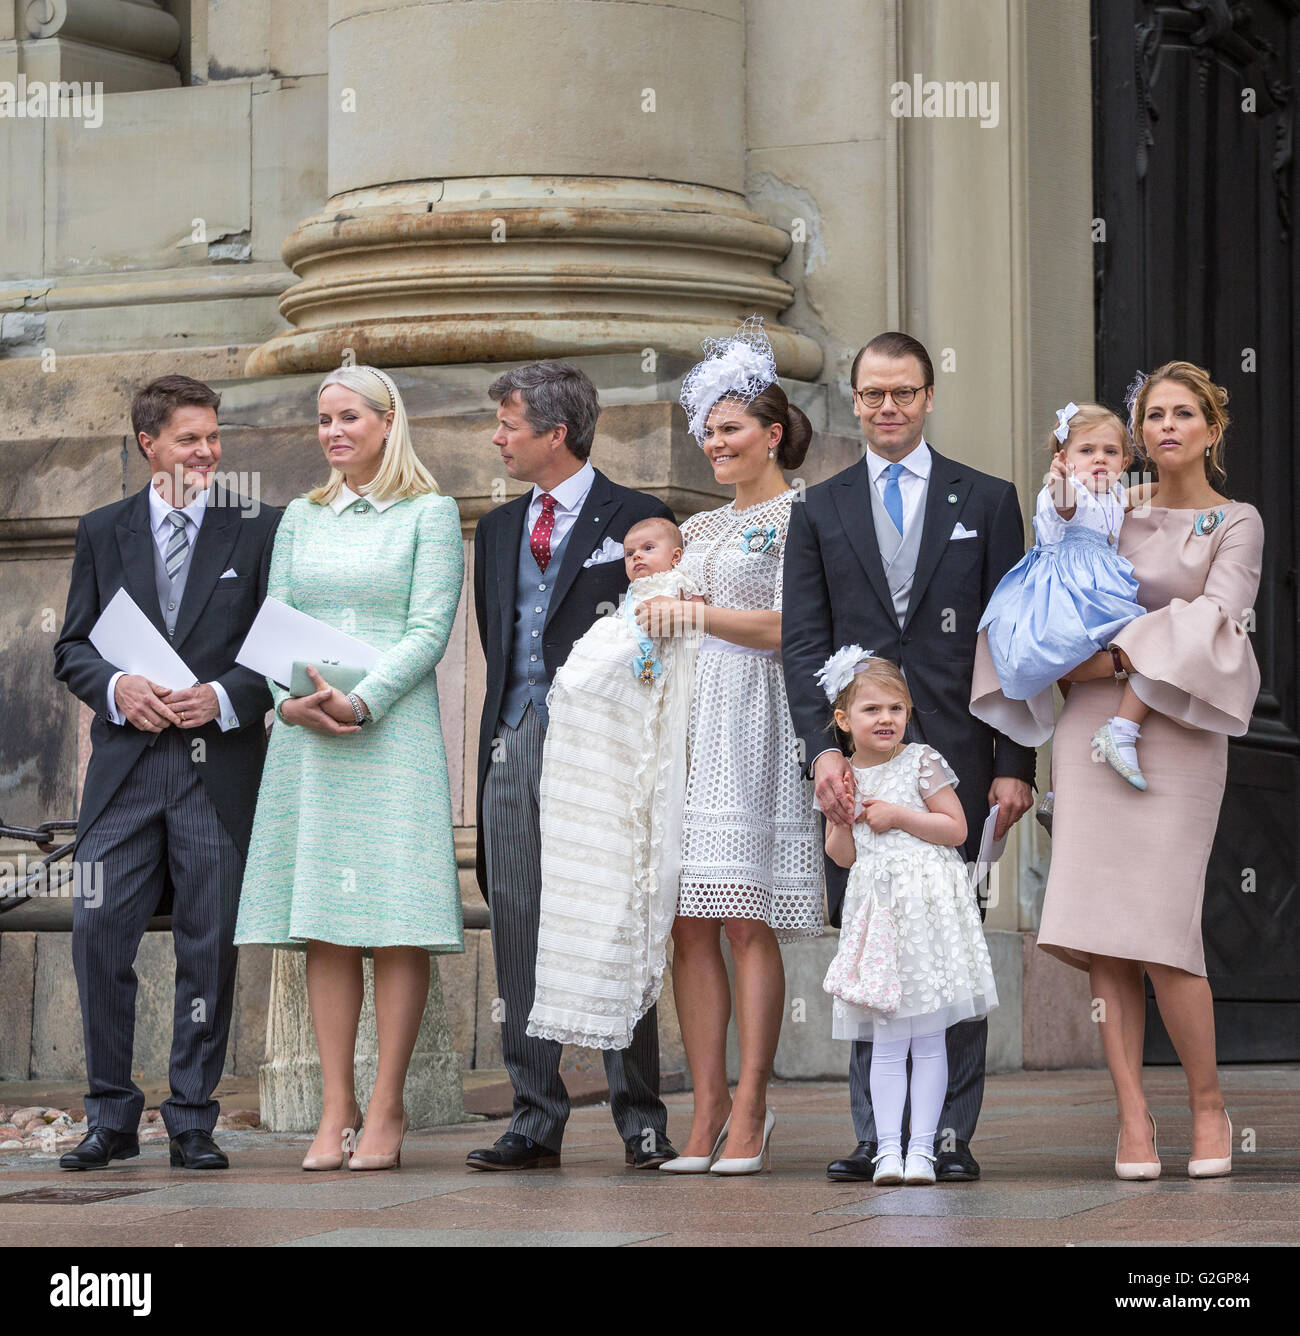 Royal Baptism in Sweden May 2016 – Prince Oscar of Sweden. The closest family with godparents - Stock Image